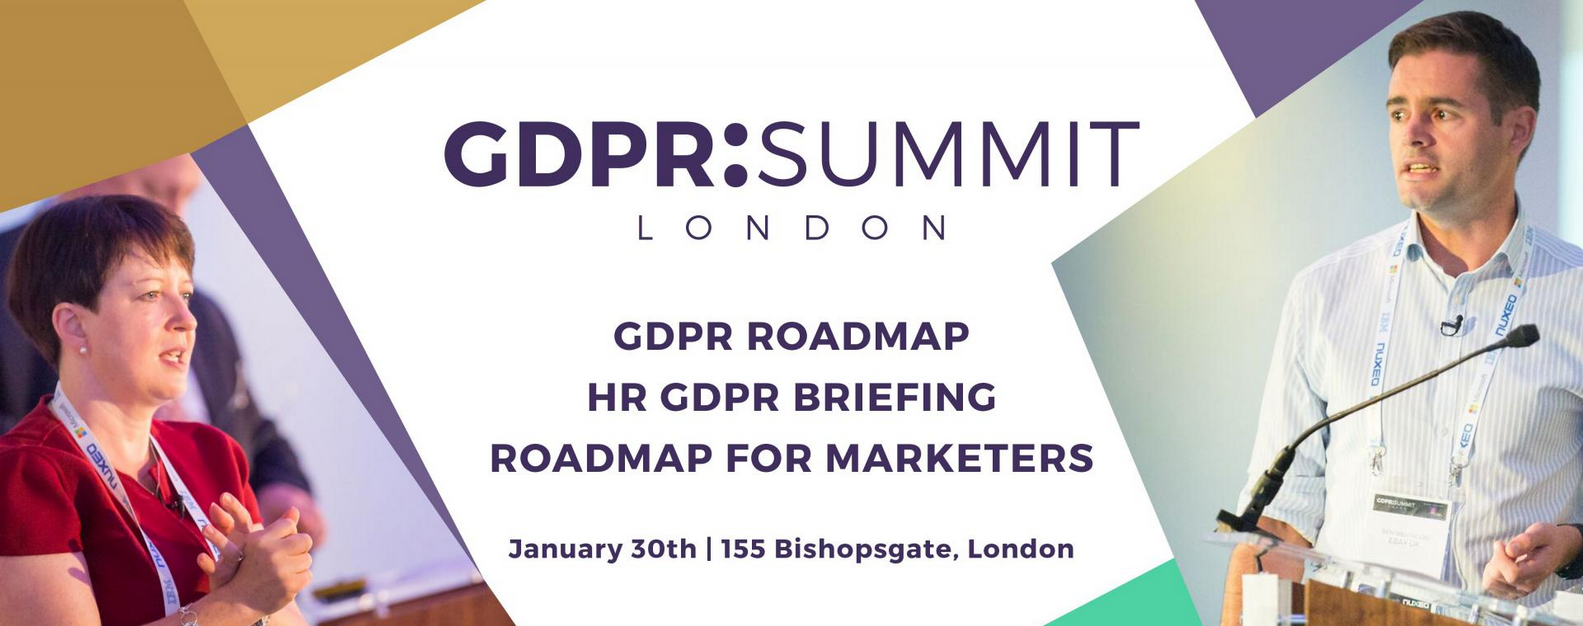 GDPR:Summit London